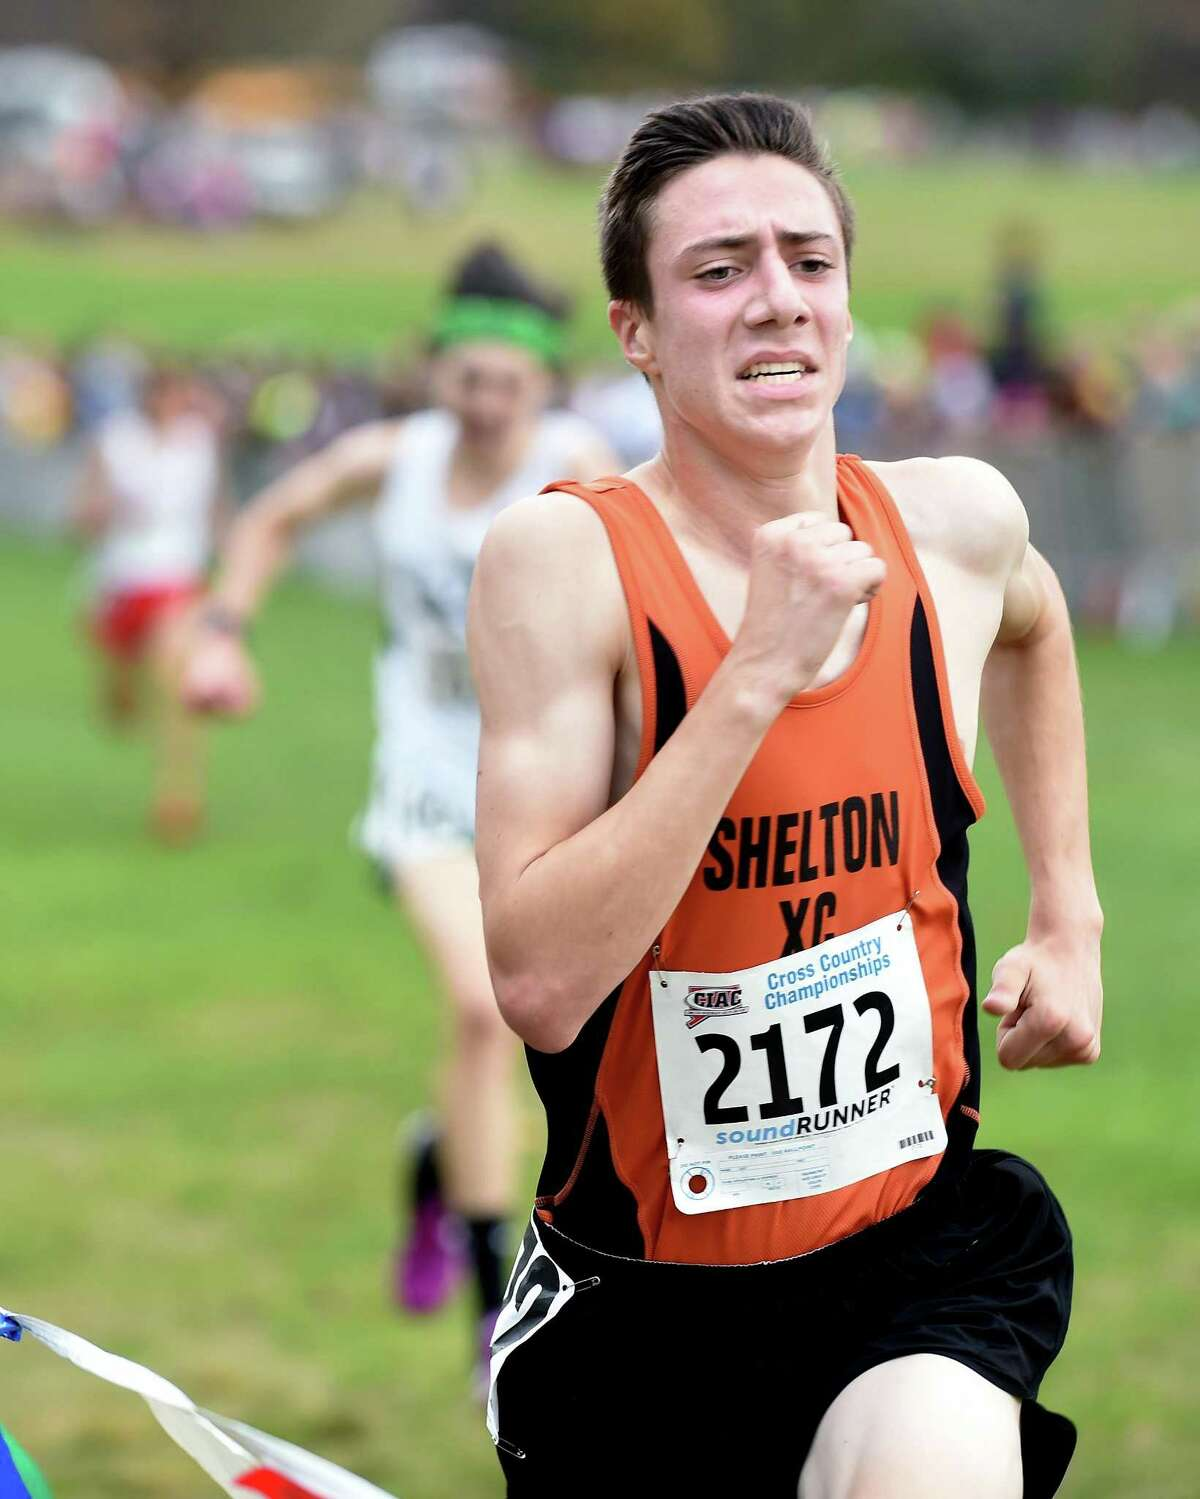 Robert Dillon of Shelton nears the finish line placing third in the 2017 CIAC Fall Championship Boys Cross Country race in Manchester on November 3, 2017.